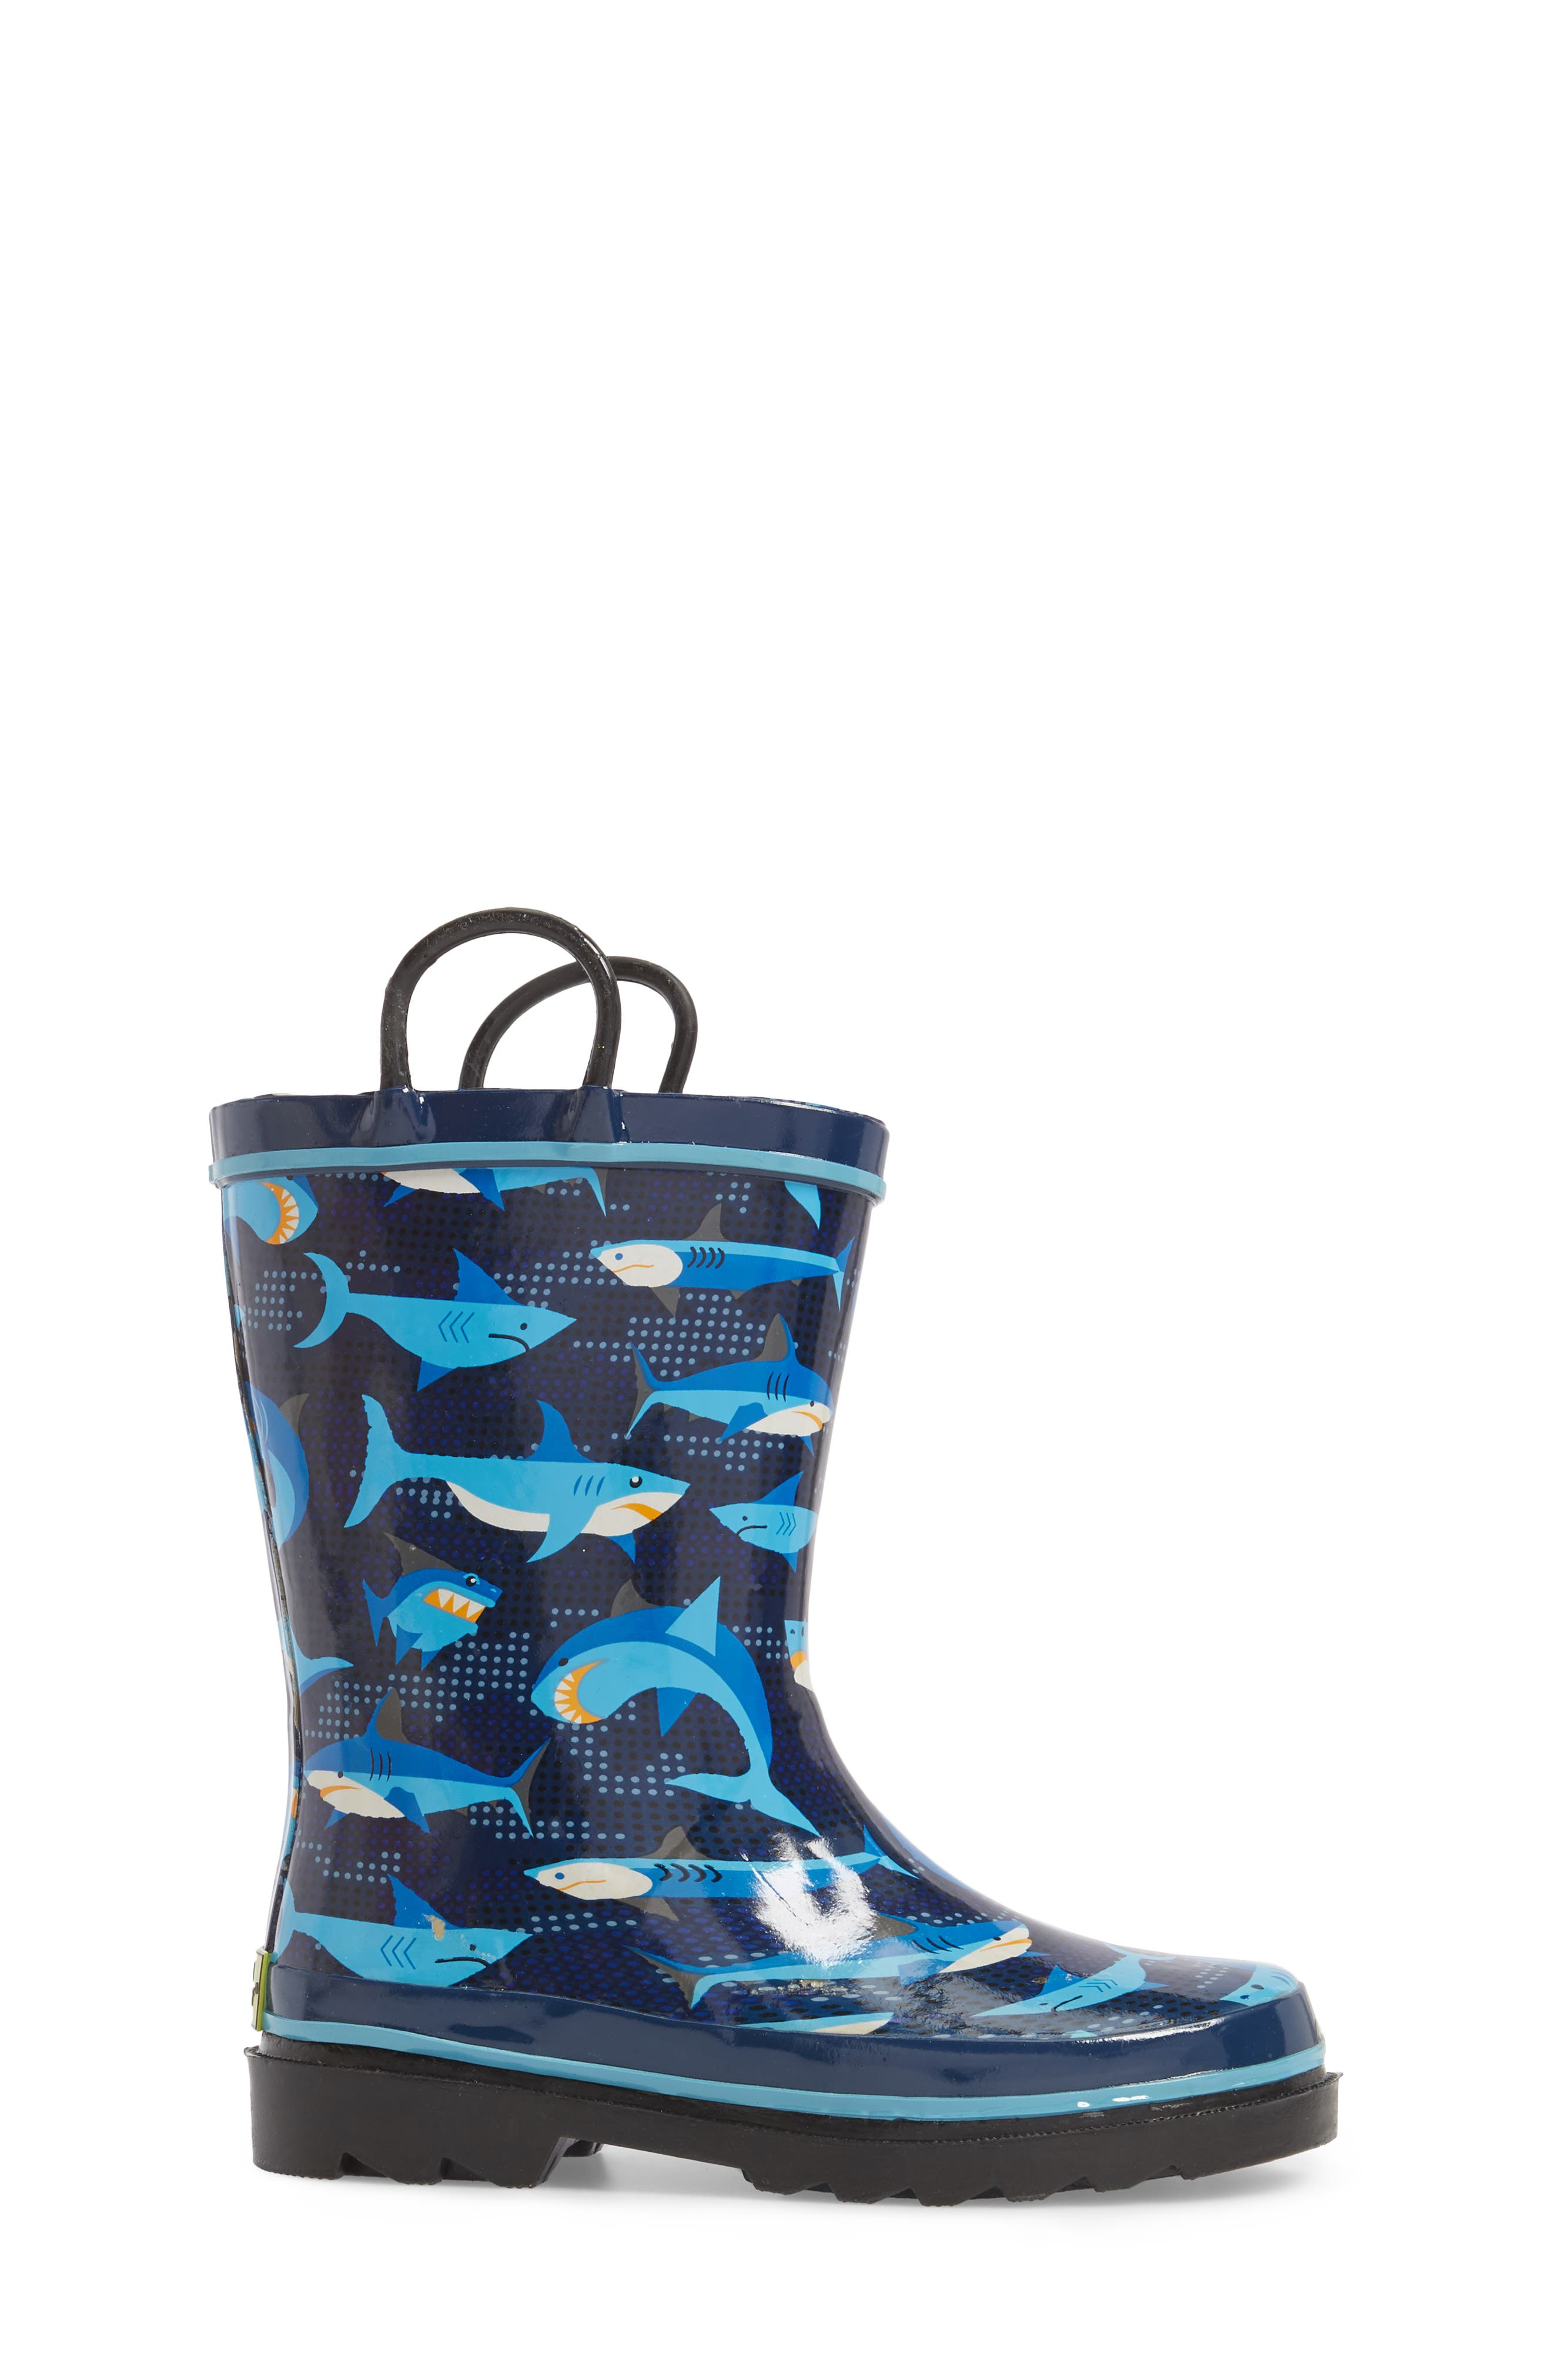 WESTERN CHIEF, Pixel Shark Camo Rain Boot, Alternate thumbnail 3, color, NAVY